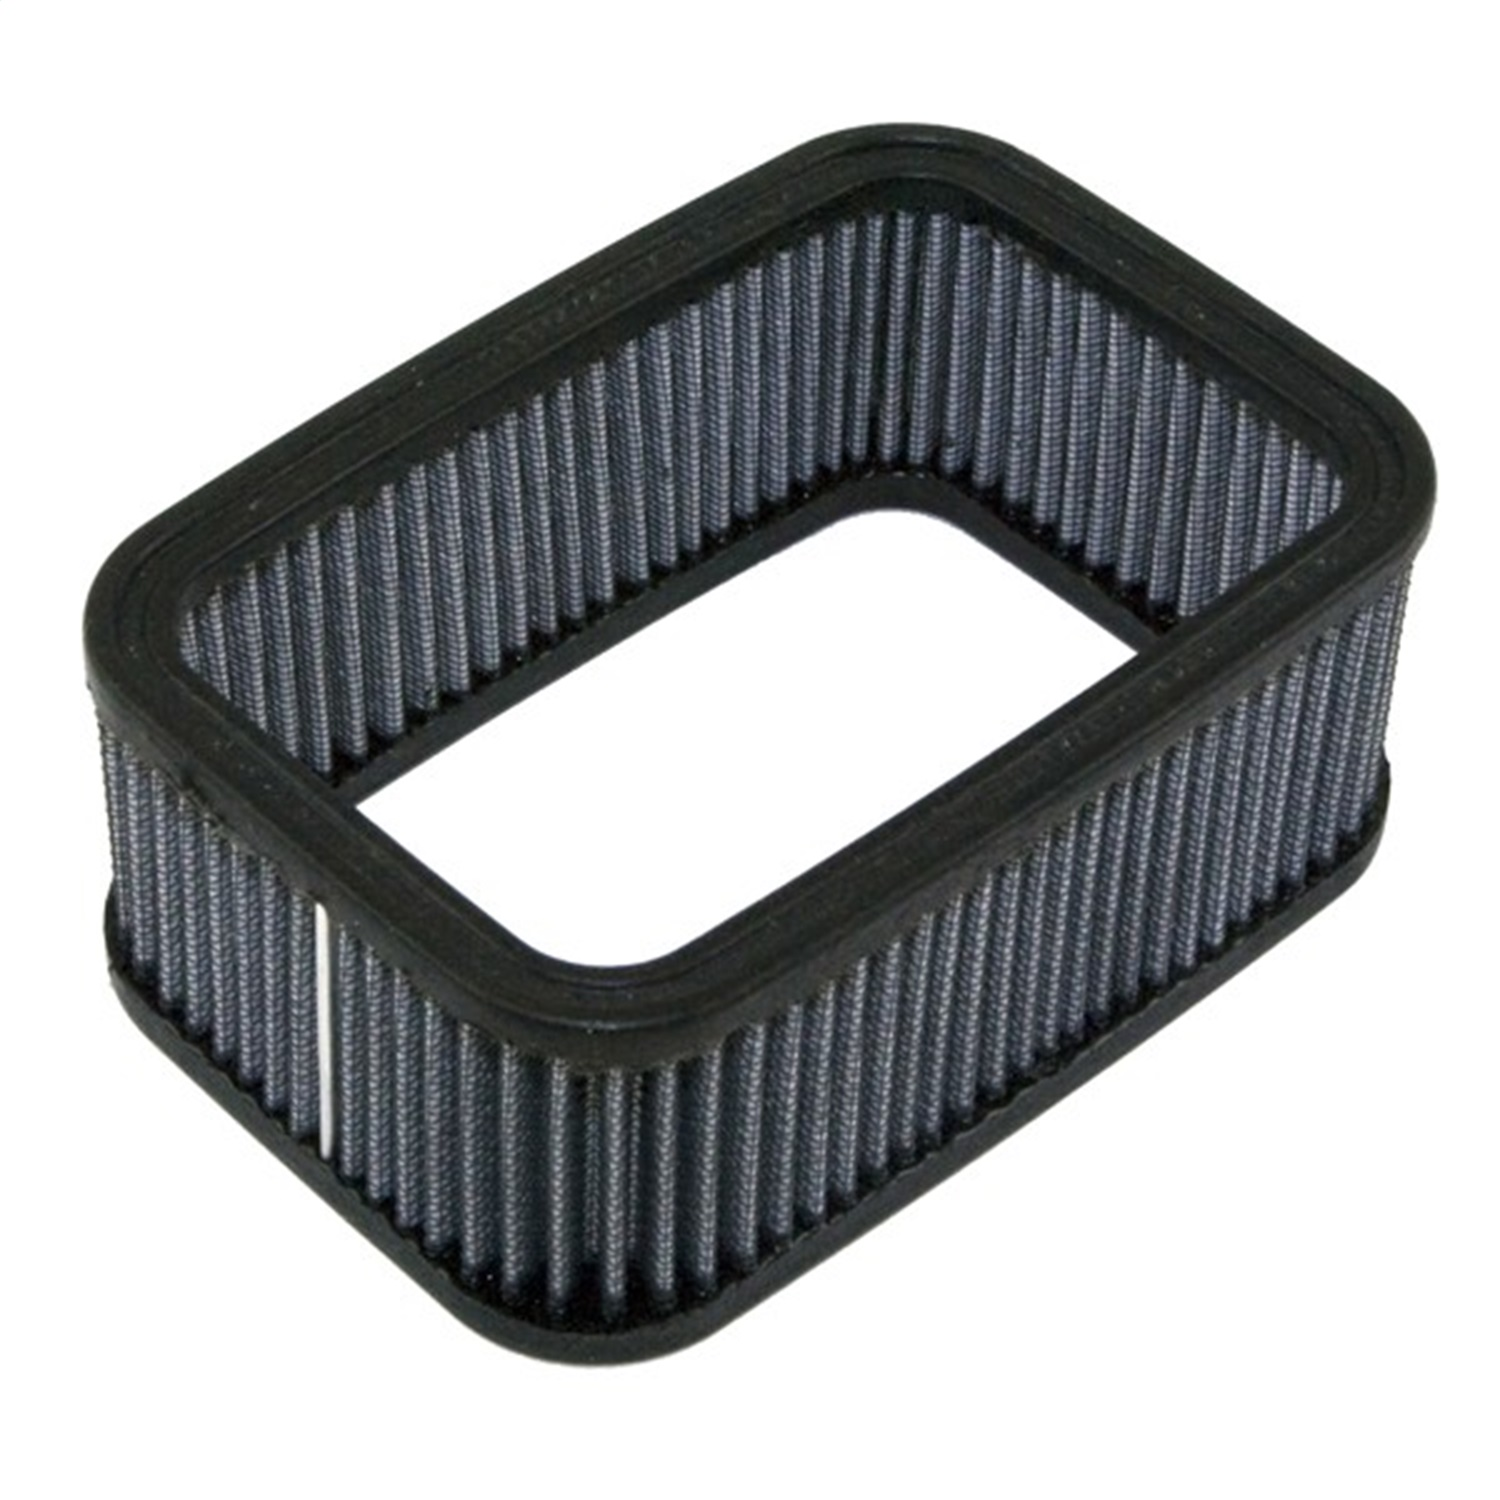 Omix-Ada 17704.05 Weber Air Filter 17704.05